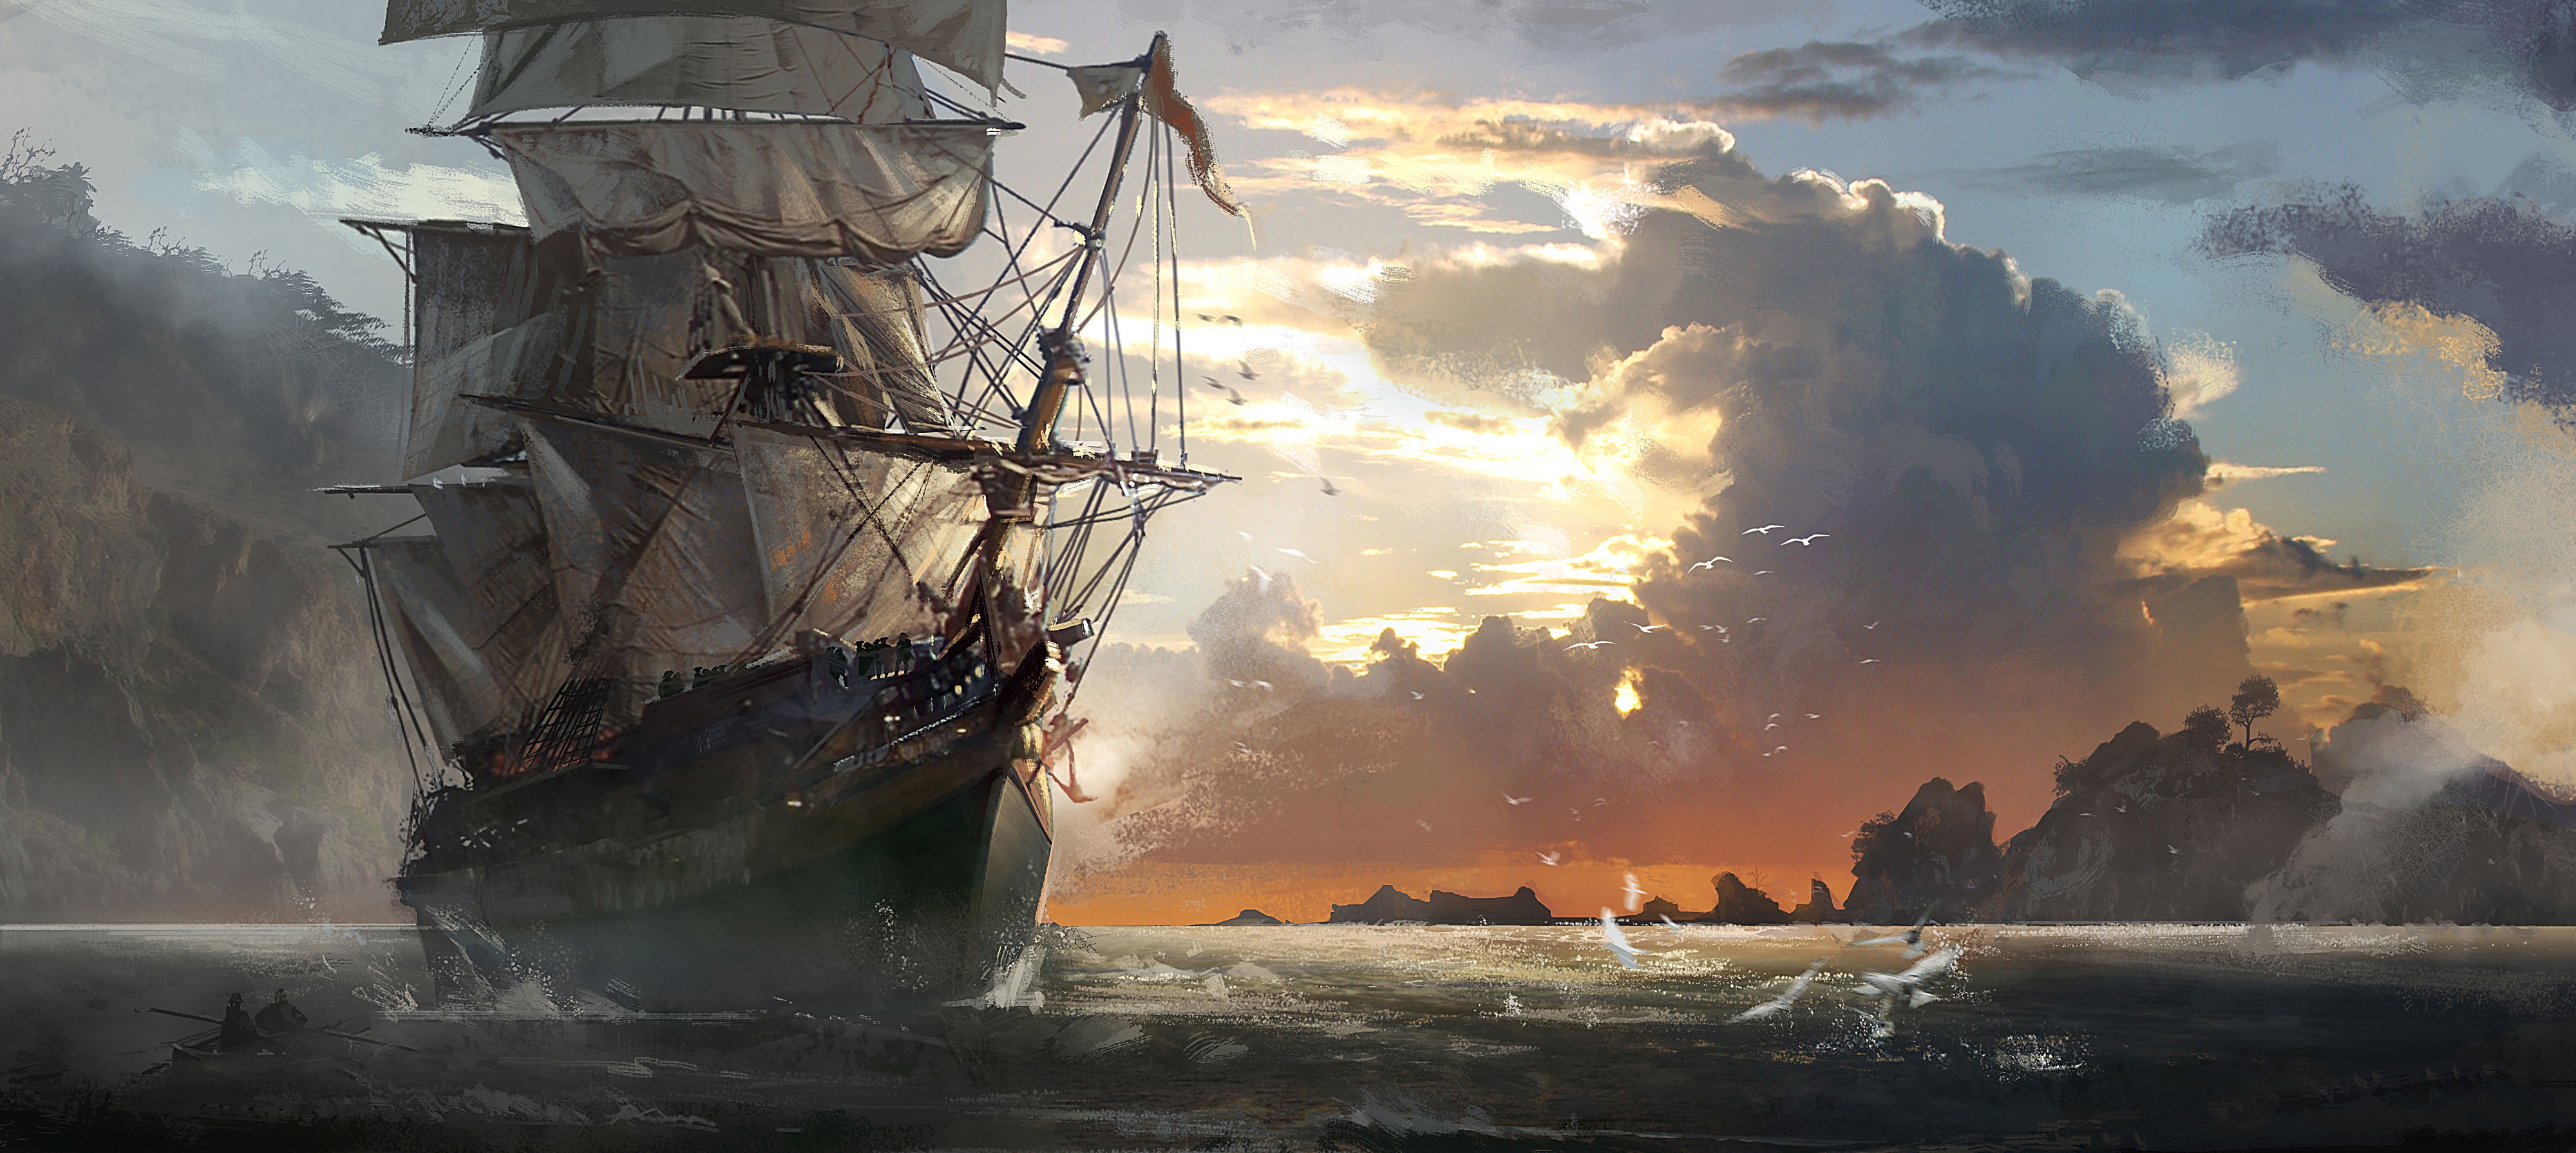 128 Assassin S Creed Iv Black Flag Hd Wallpapers Background